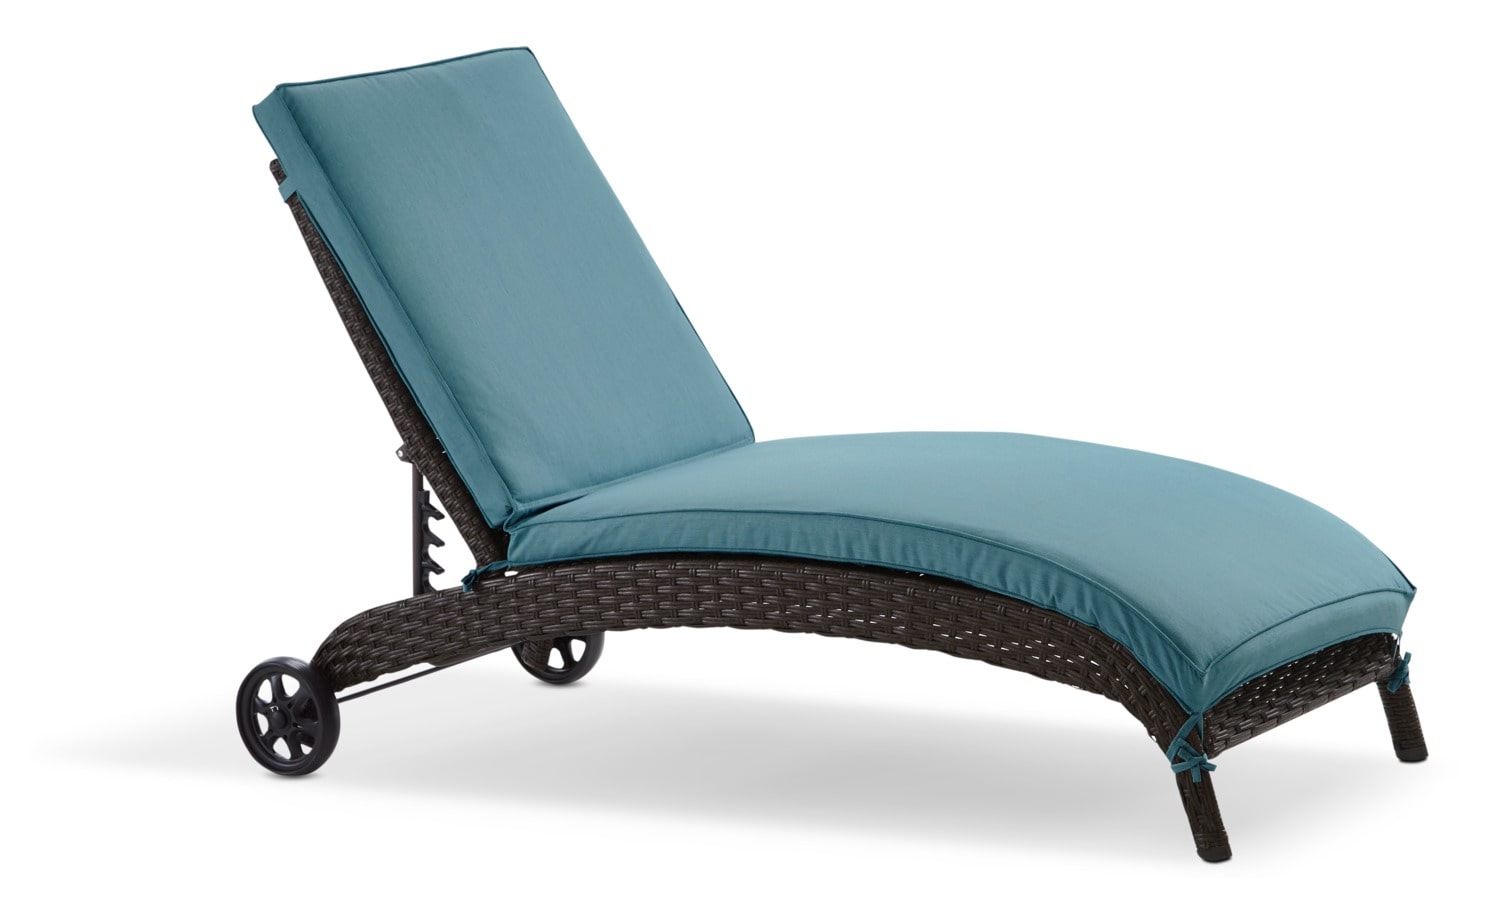 Orion Chaise Lounge - Blue and Brown